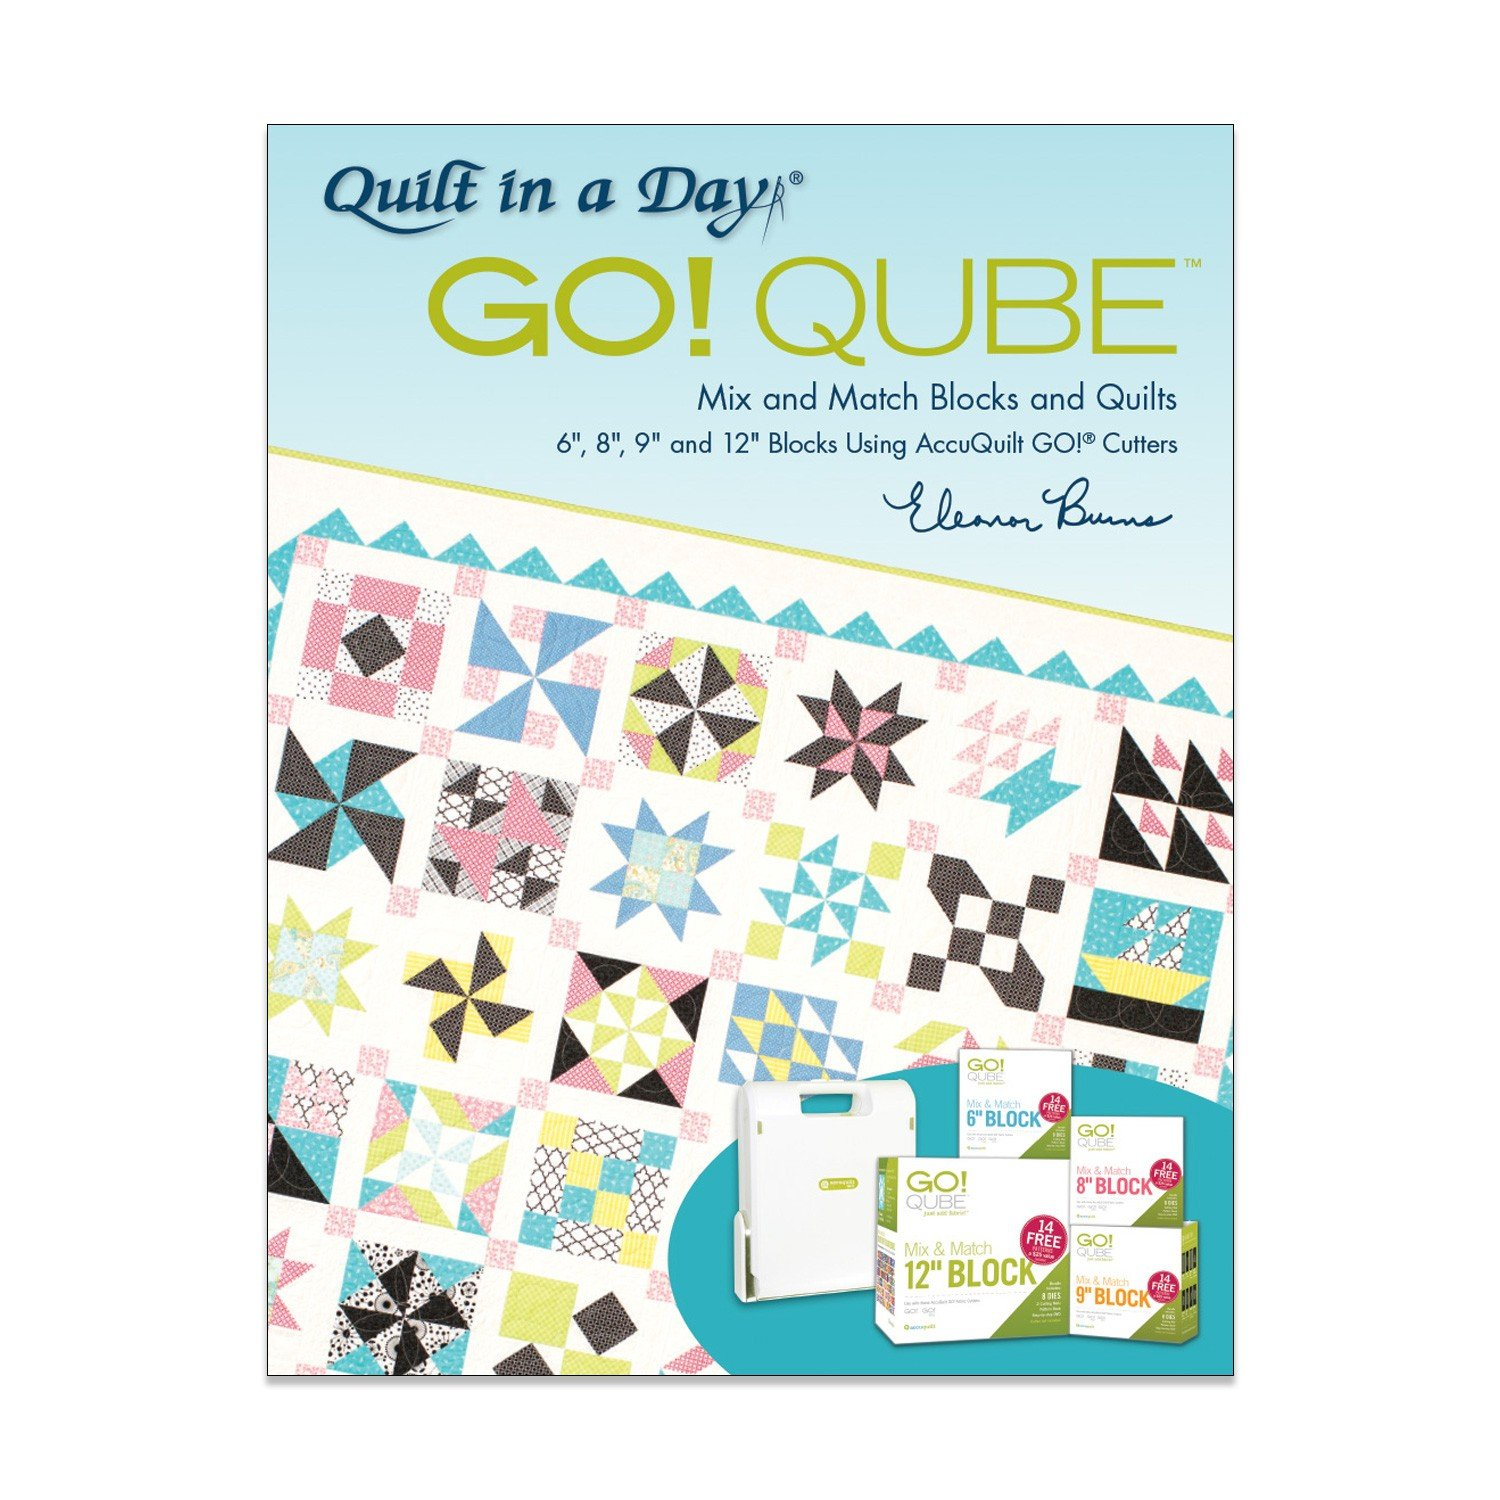 GO! Qube Quilt in a Day Book